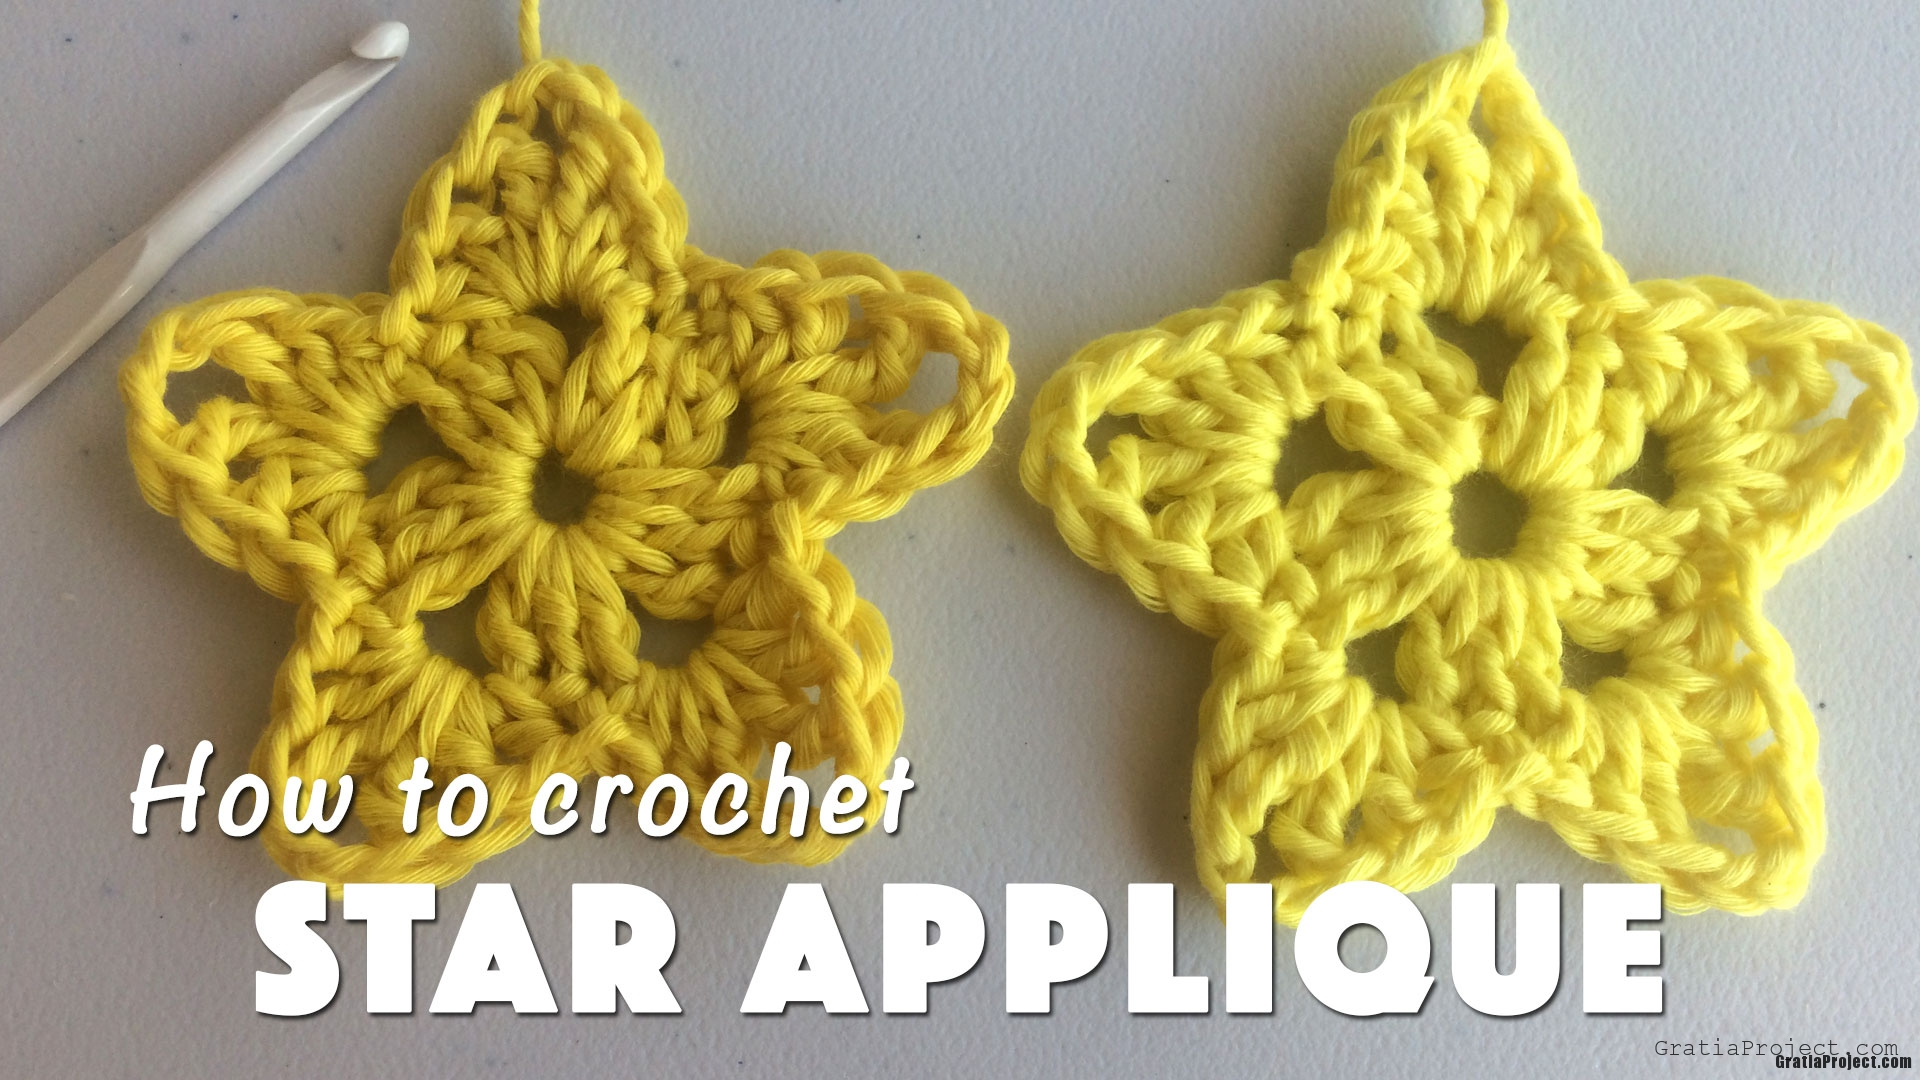 how-to-crochet-star-applique